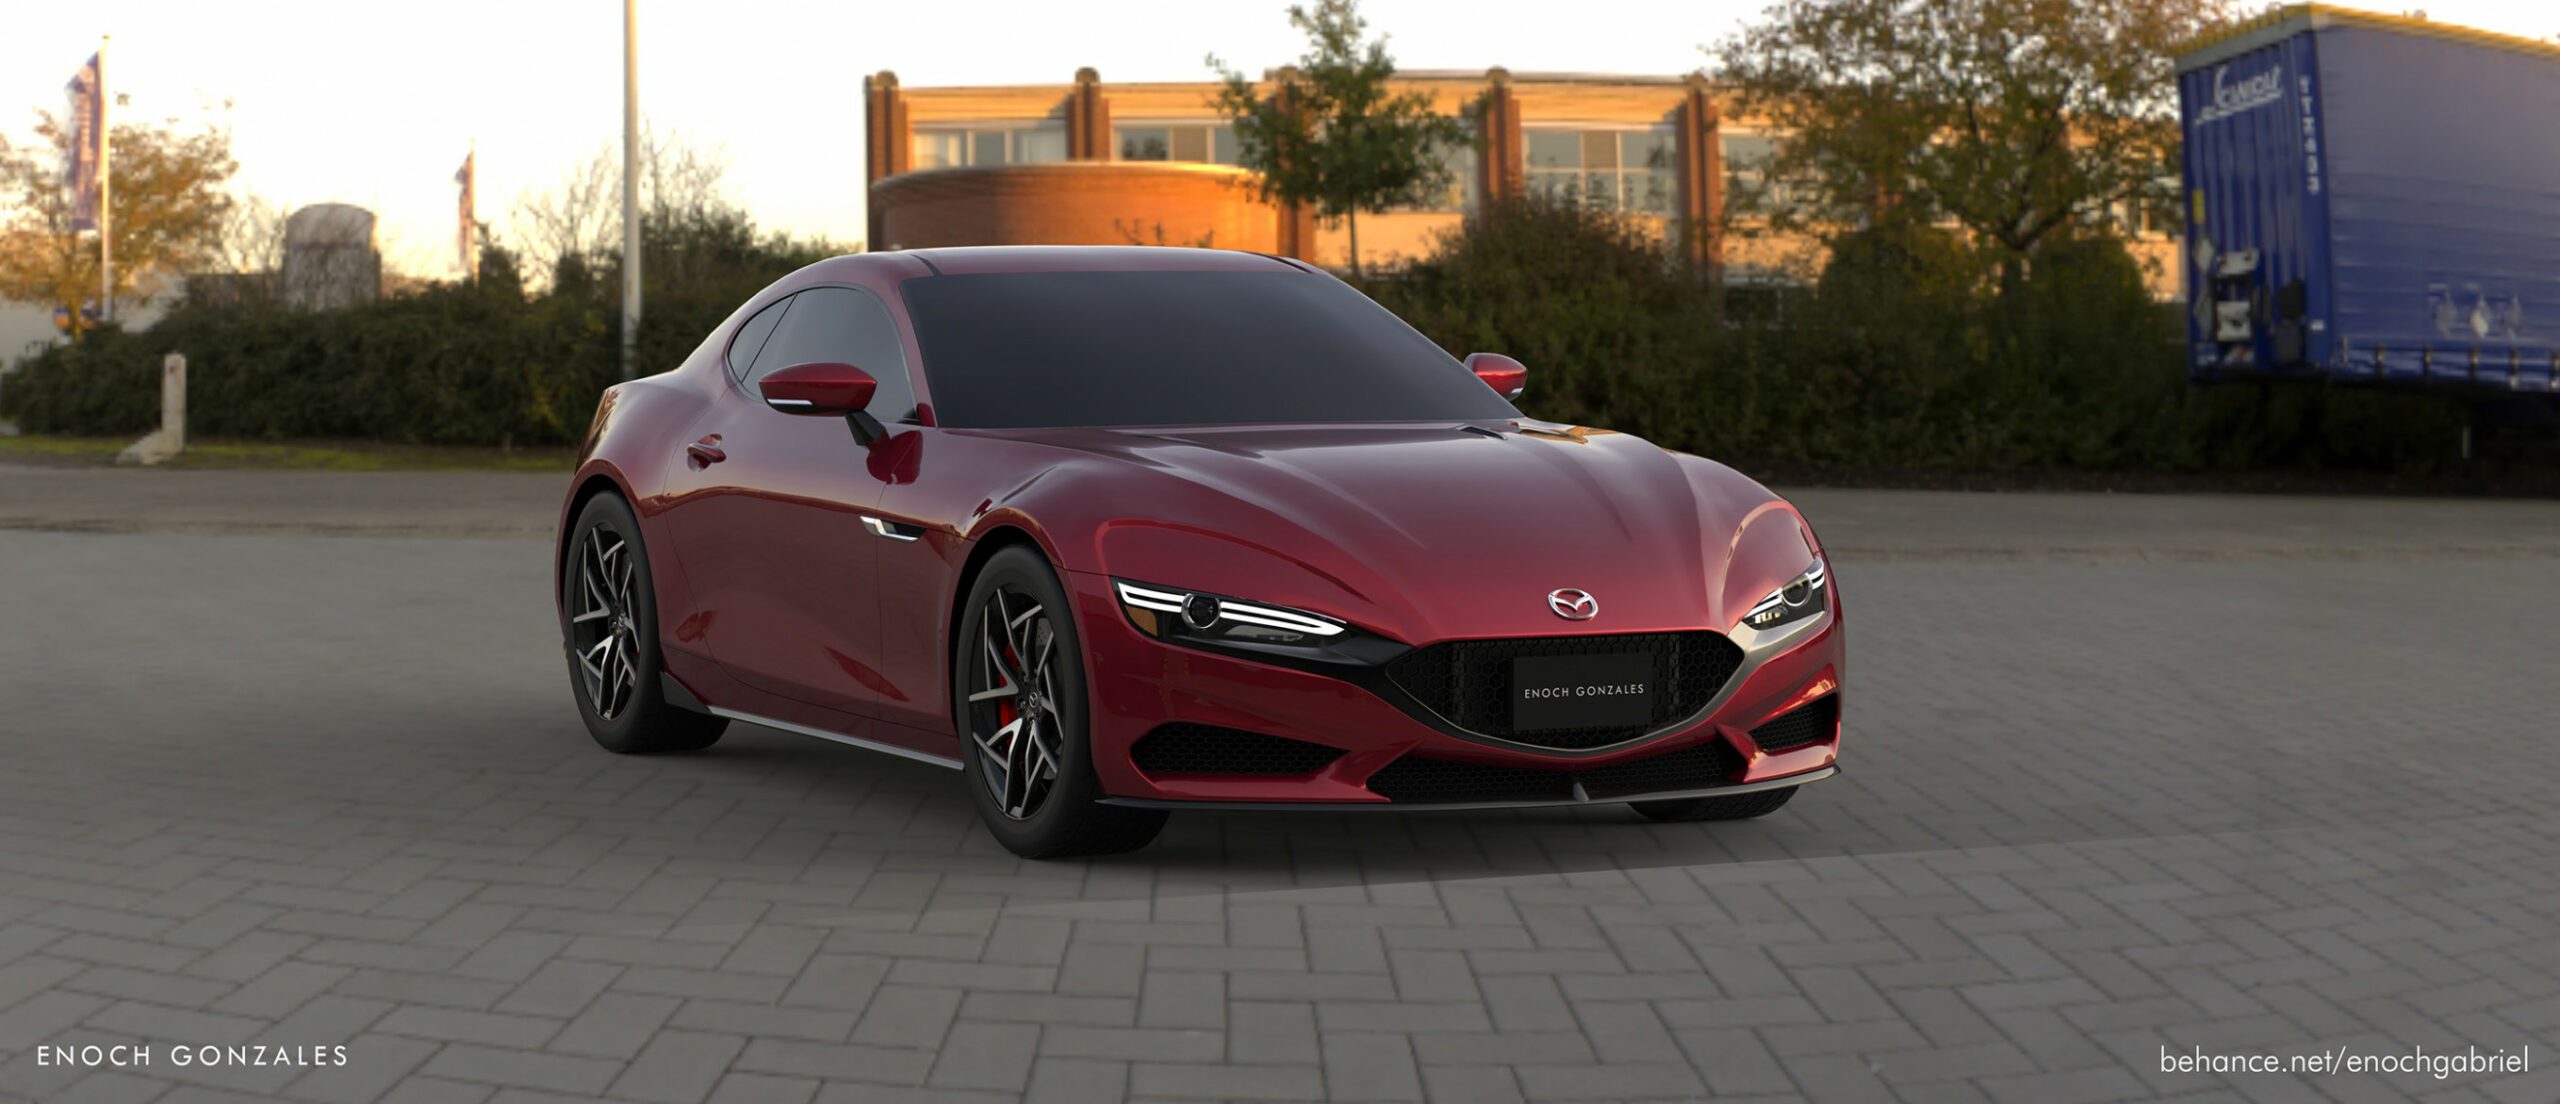 Pricing 2022 Mazda RX7